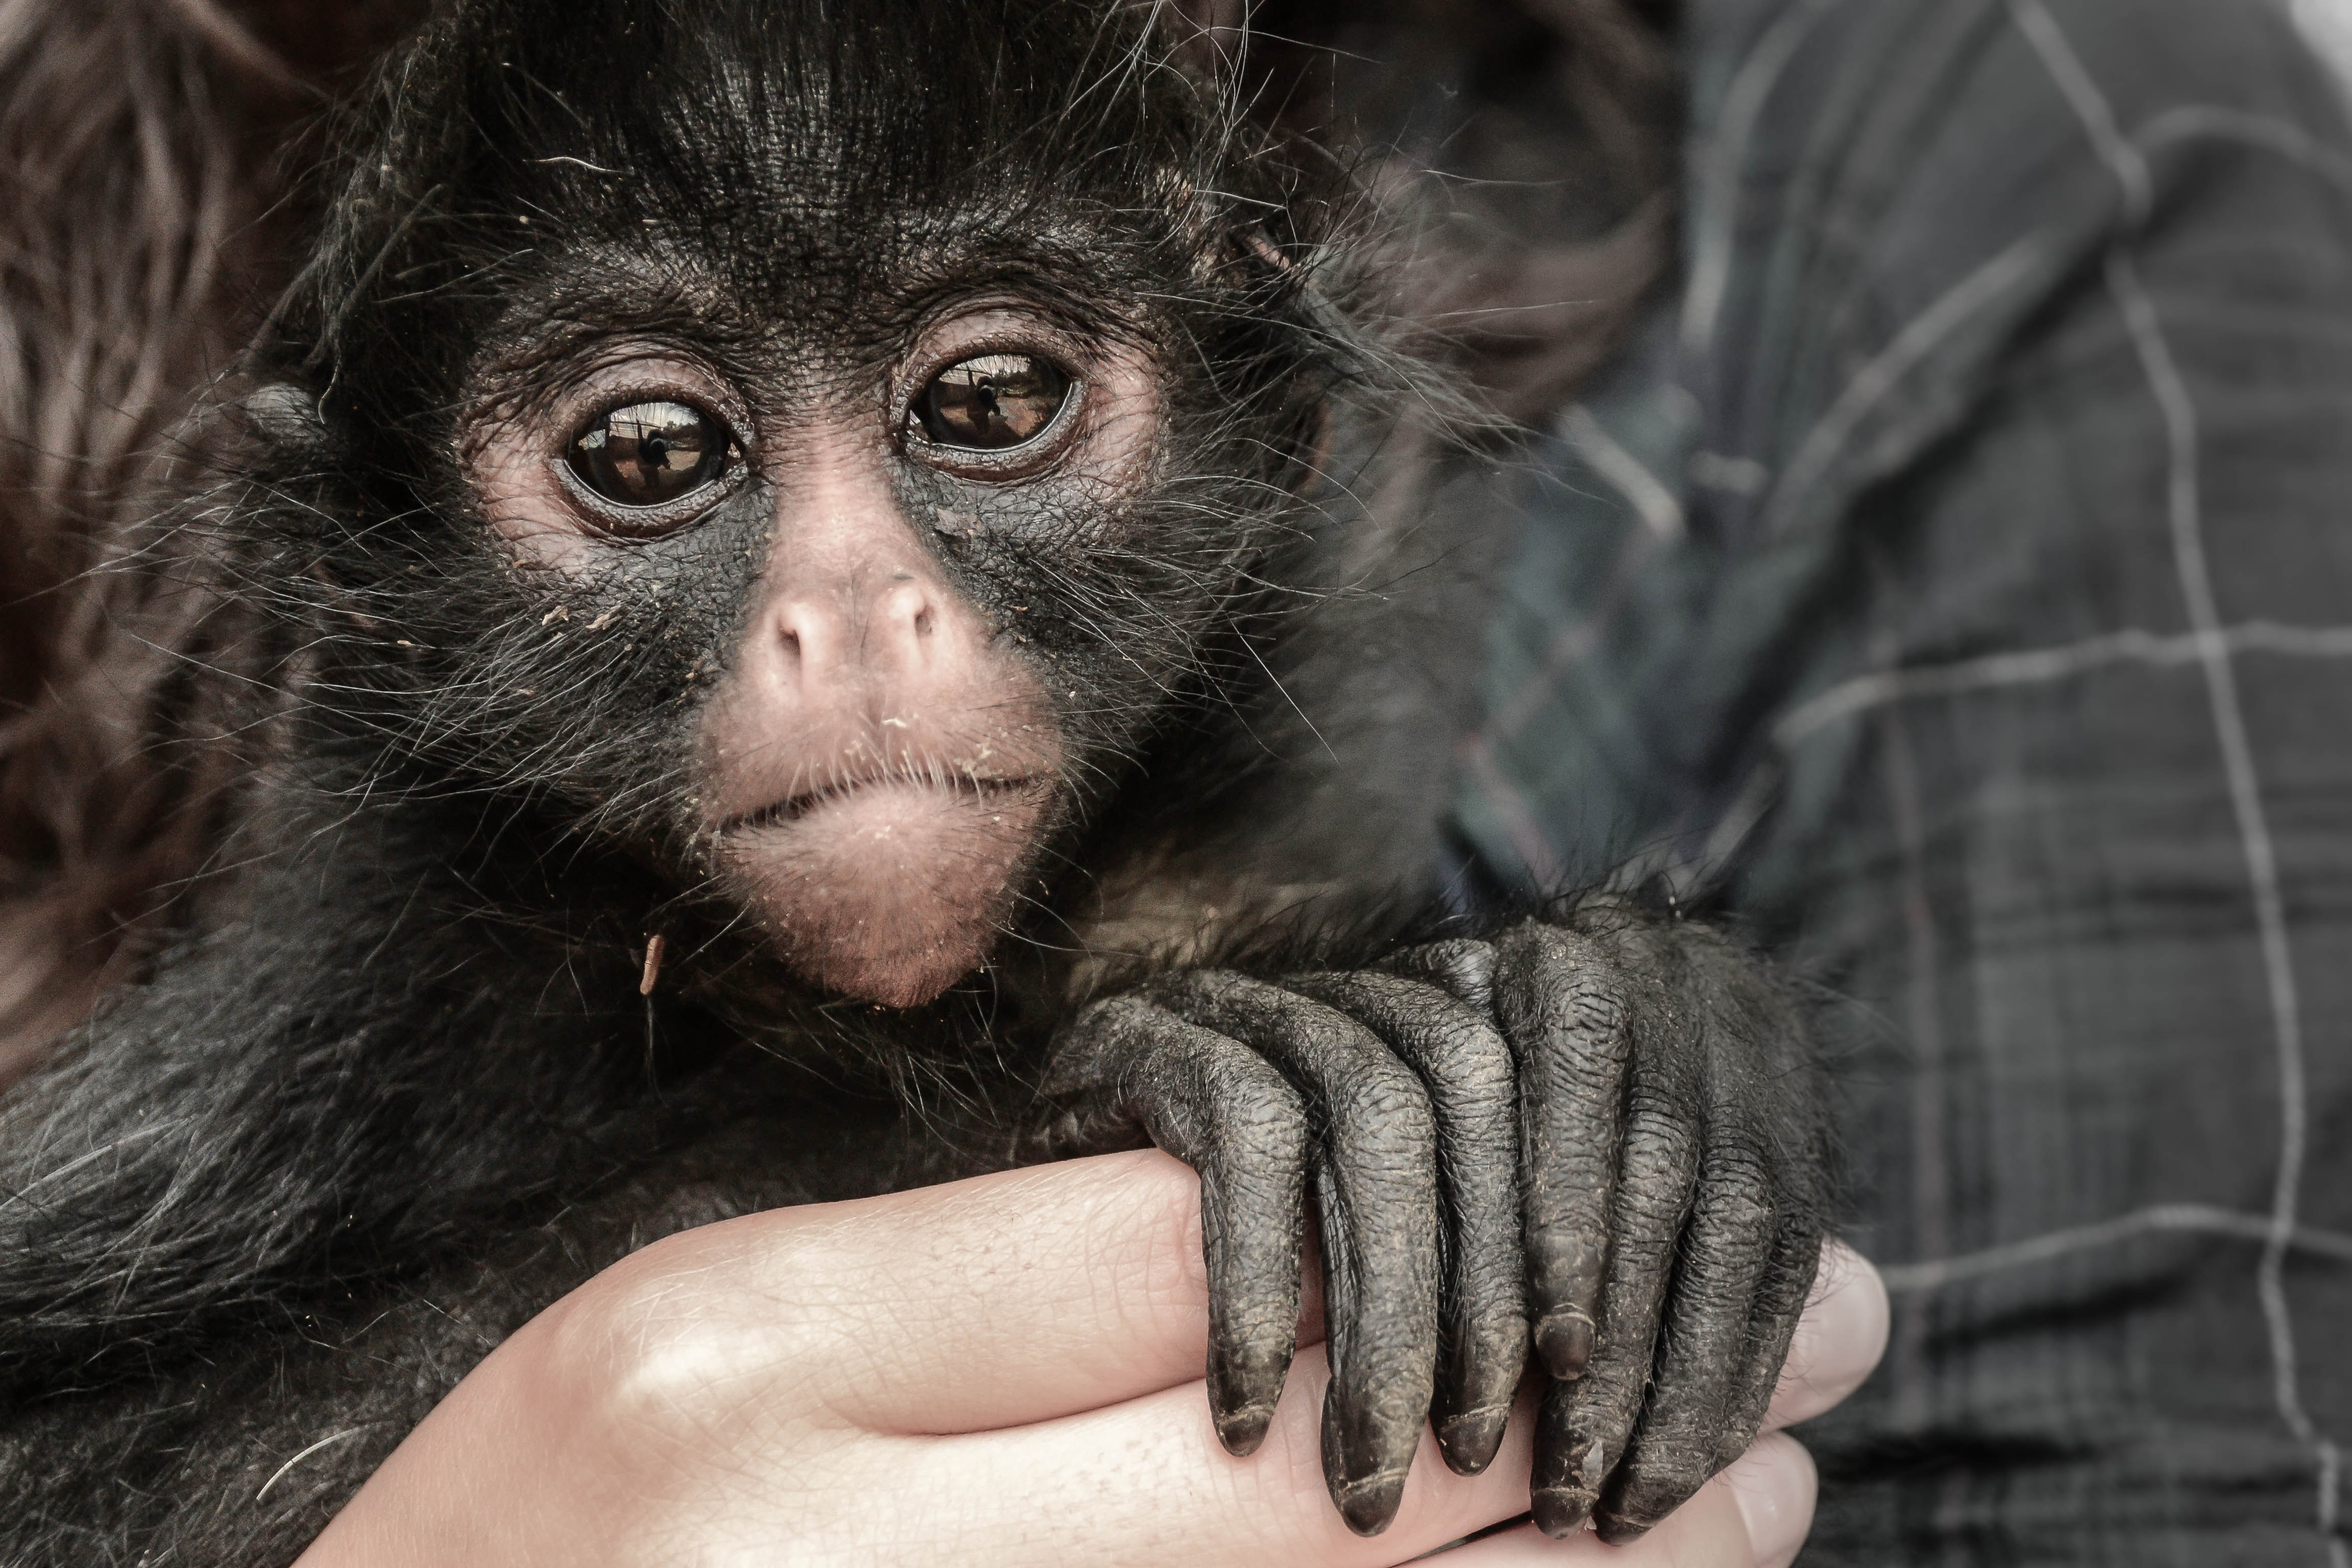 Person Holding Monkey, Animal, Ape, Hands, Monkey, HQ Photo